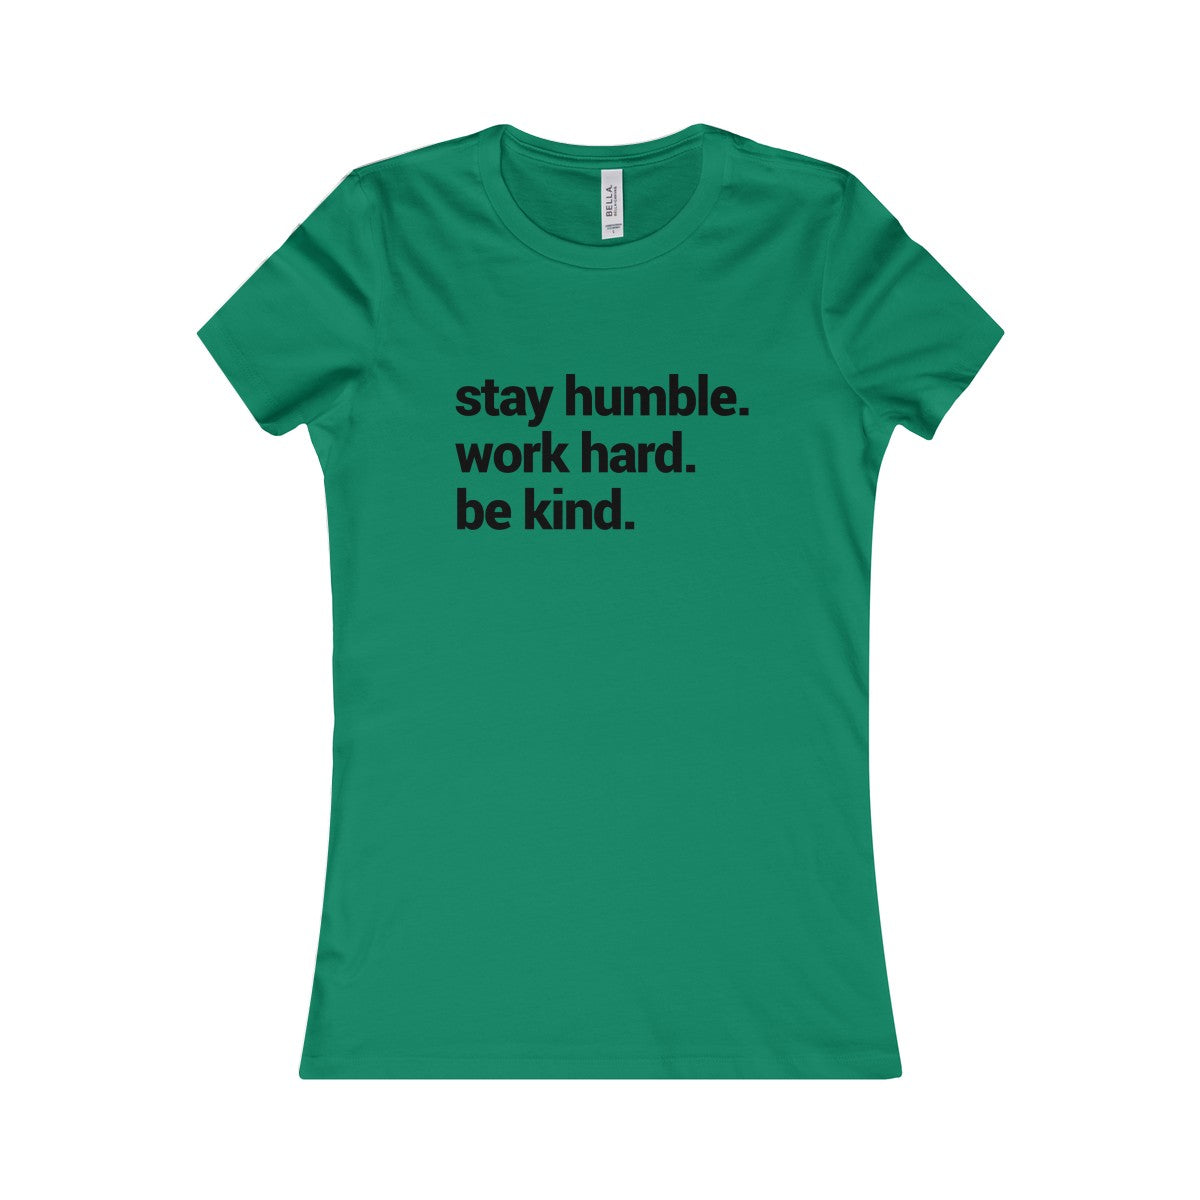 stay humble be kind teal shirt form fitted runs a little smaller than usual for a tight fit.